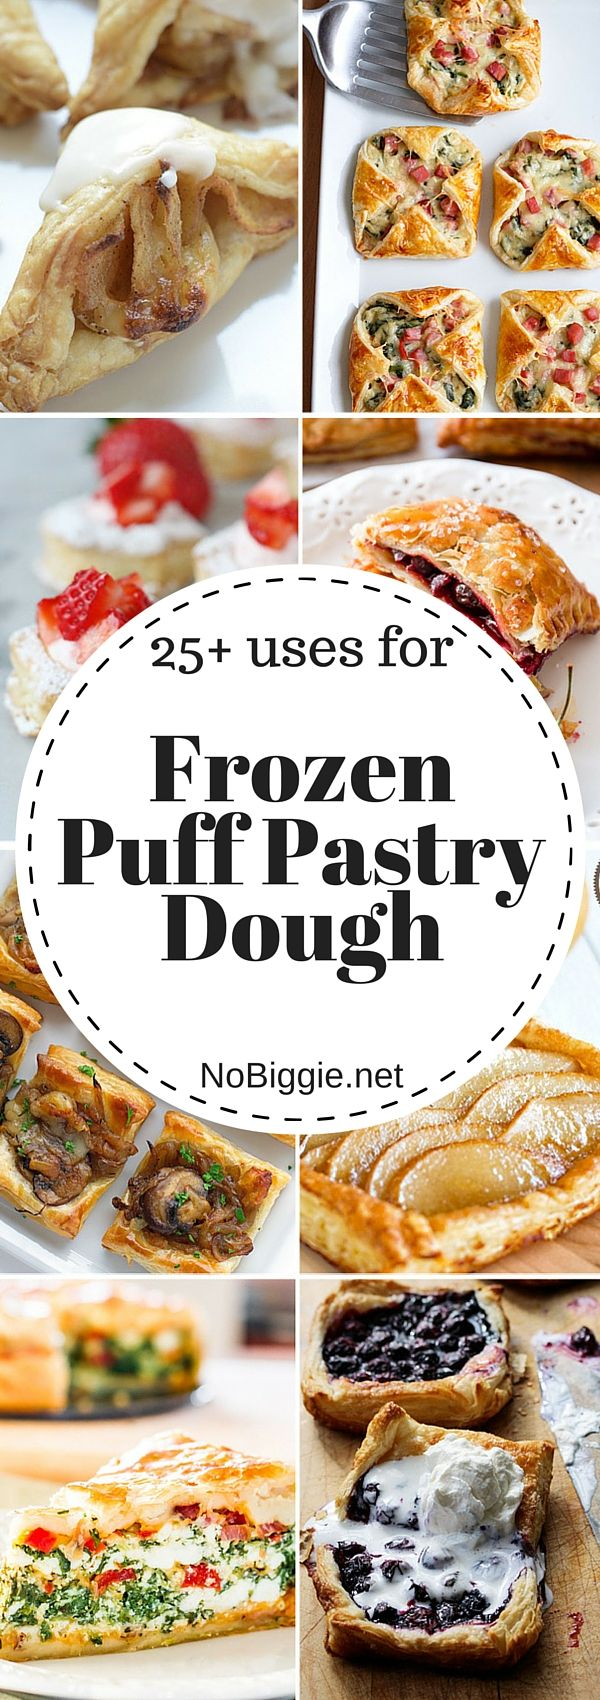 25+ Puff Pastry Dough Recipes